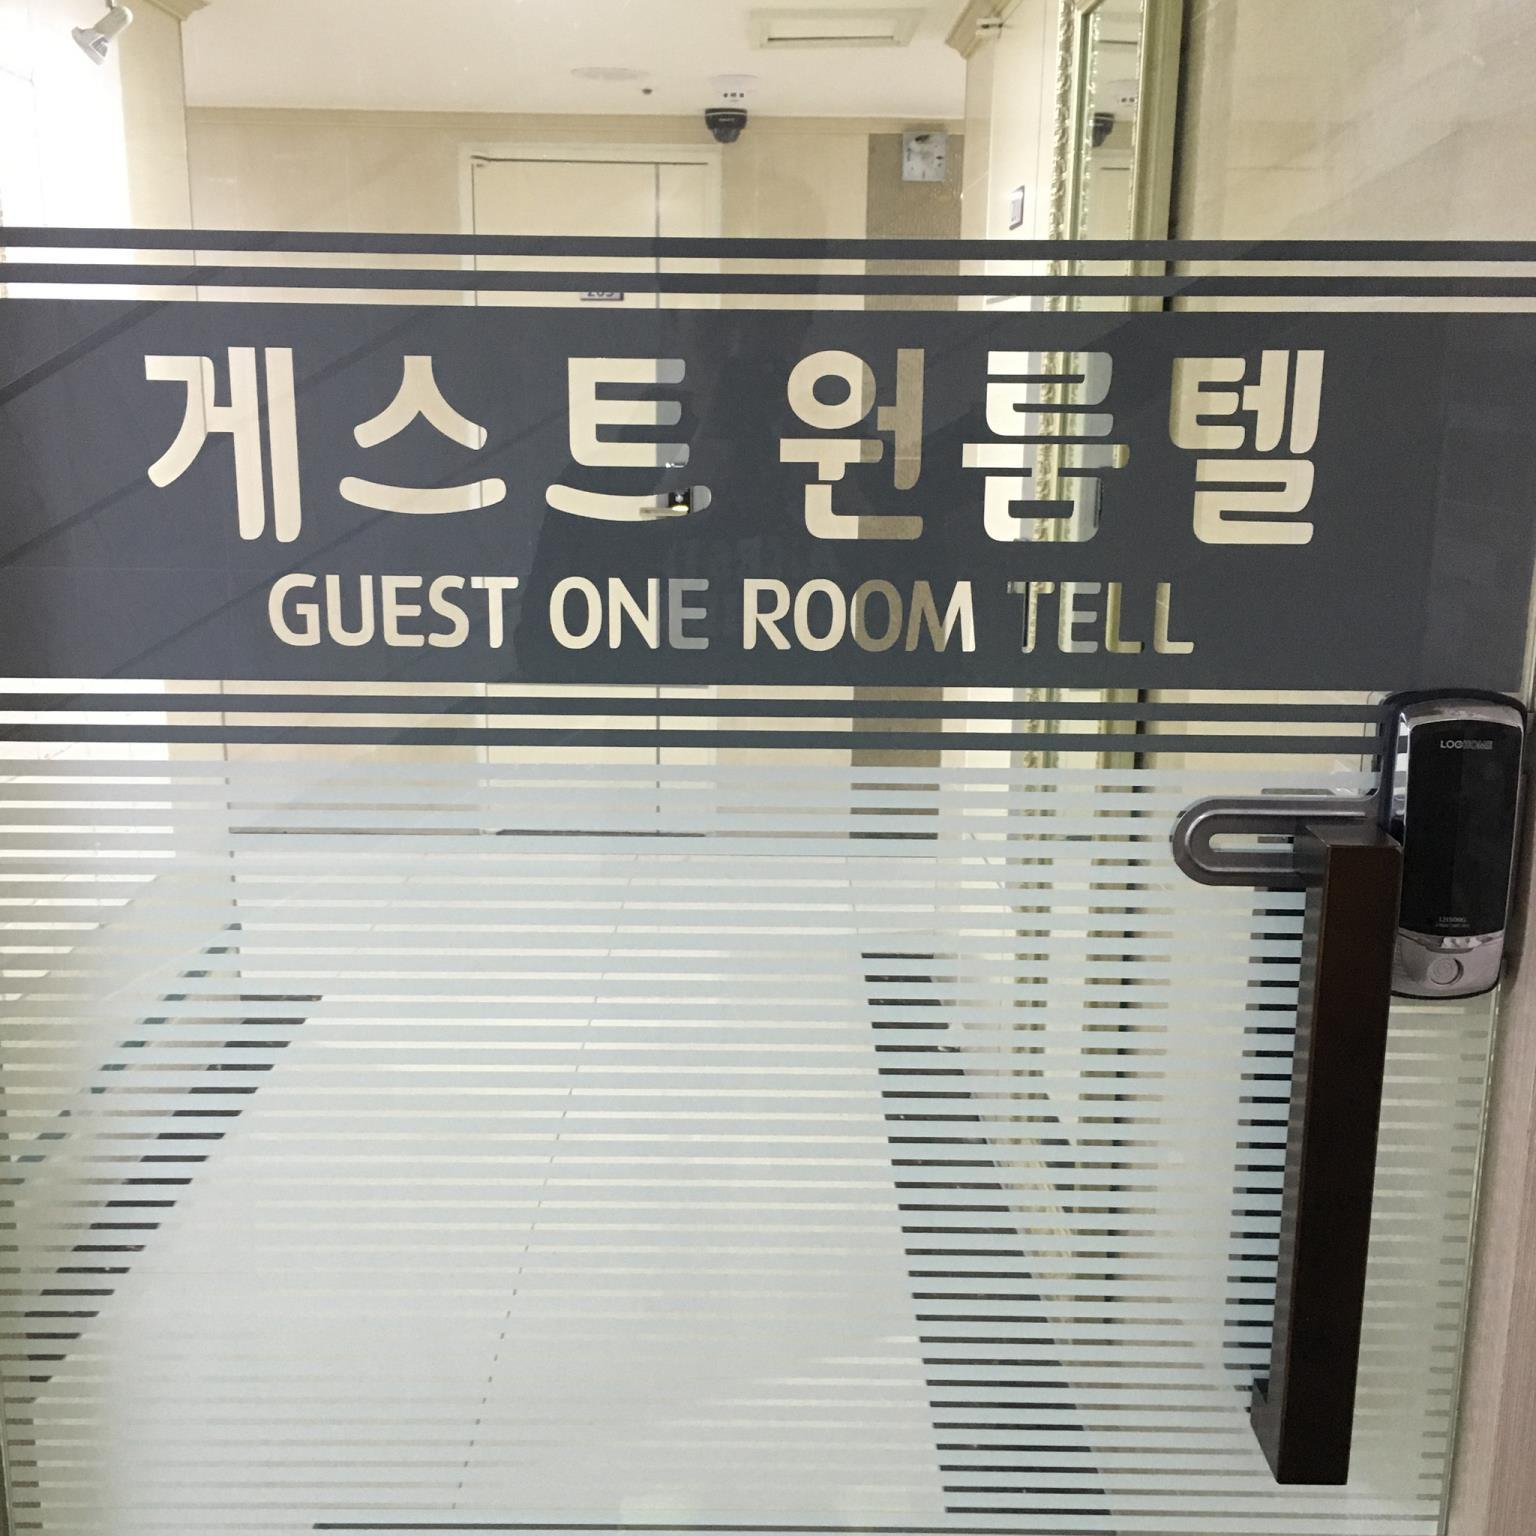 Guest Oneroomtell